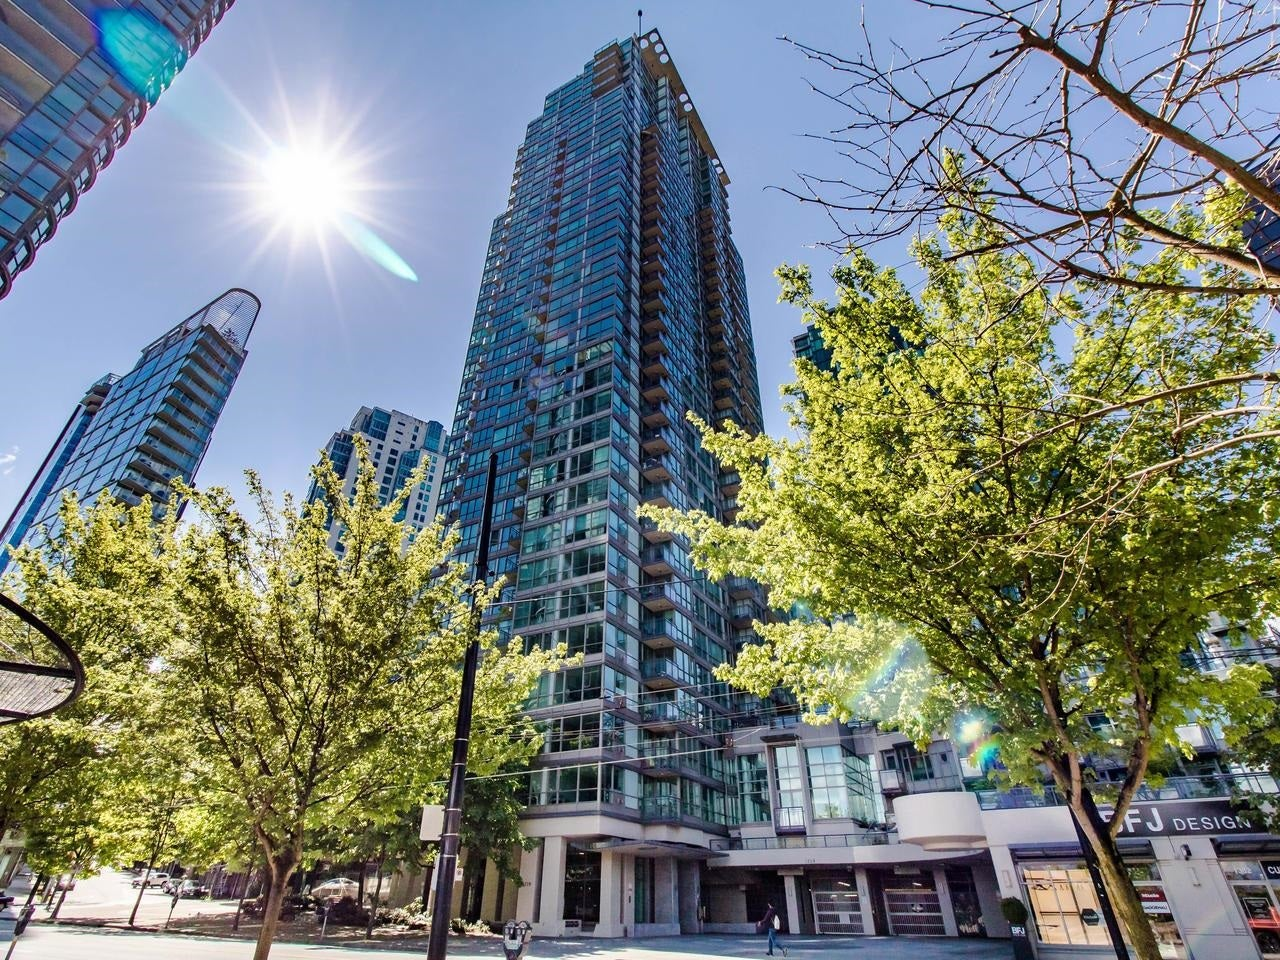 2202 1328 W PENDER STREET - Coal Harbour Apartment/Condo for sale, 2 Bedrooms (R2629055) - #1